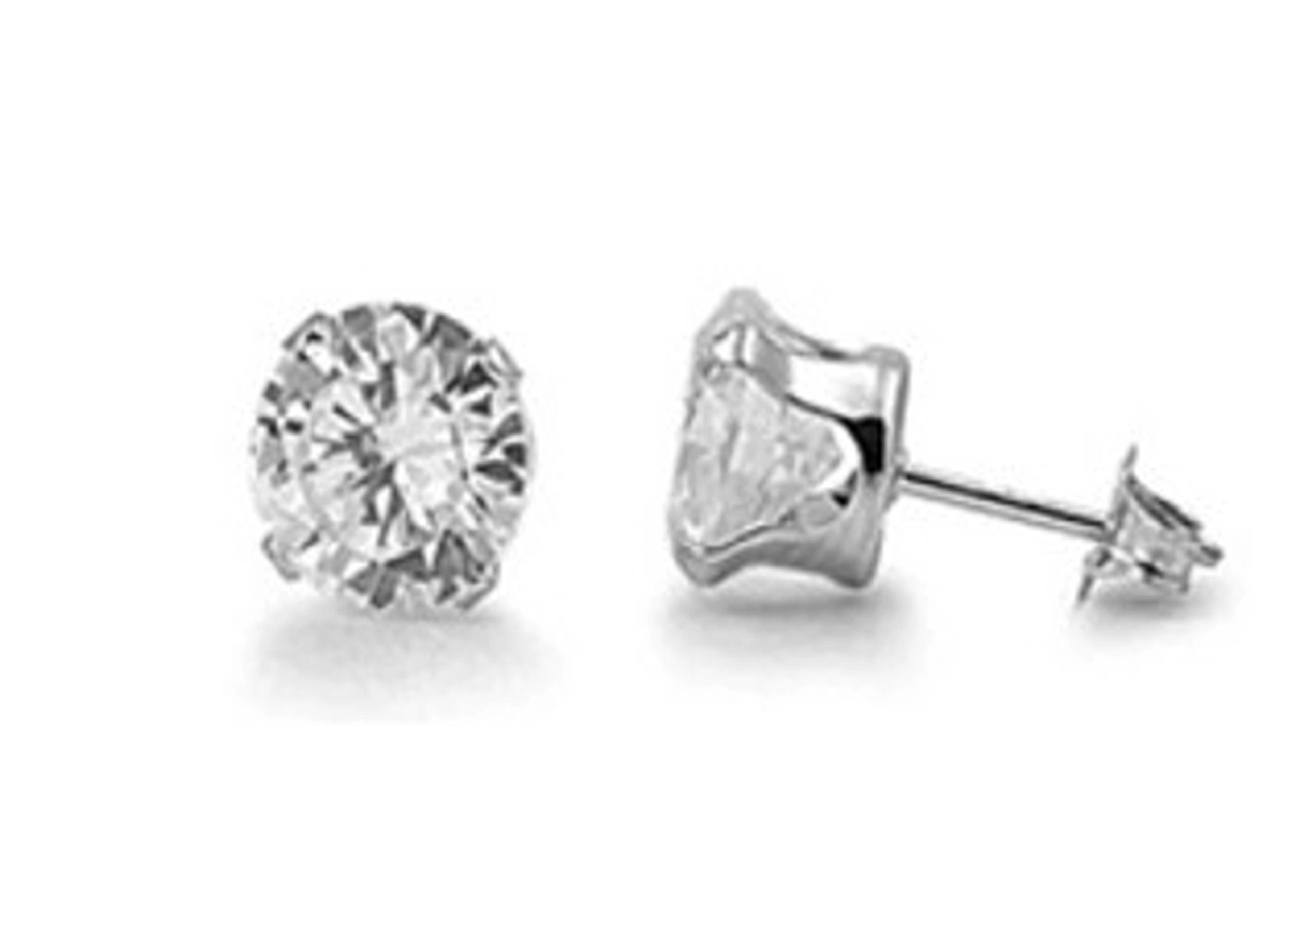 10mm Diameter Round Clear Cubic Zirconia Stud Post Earrings